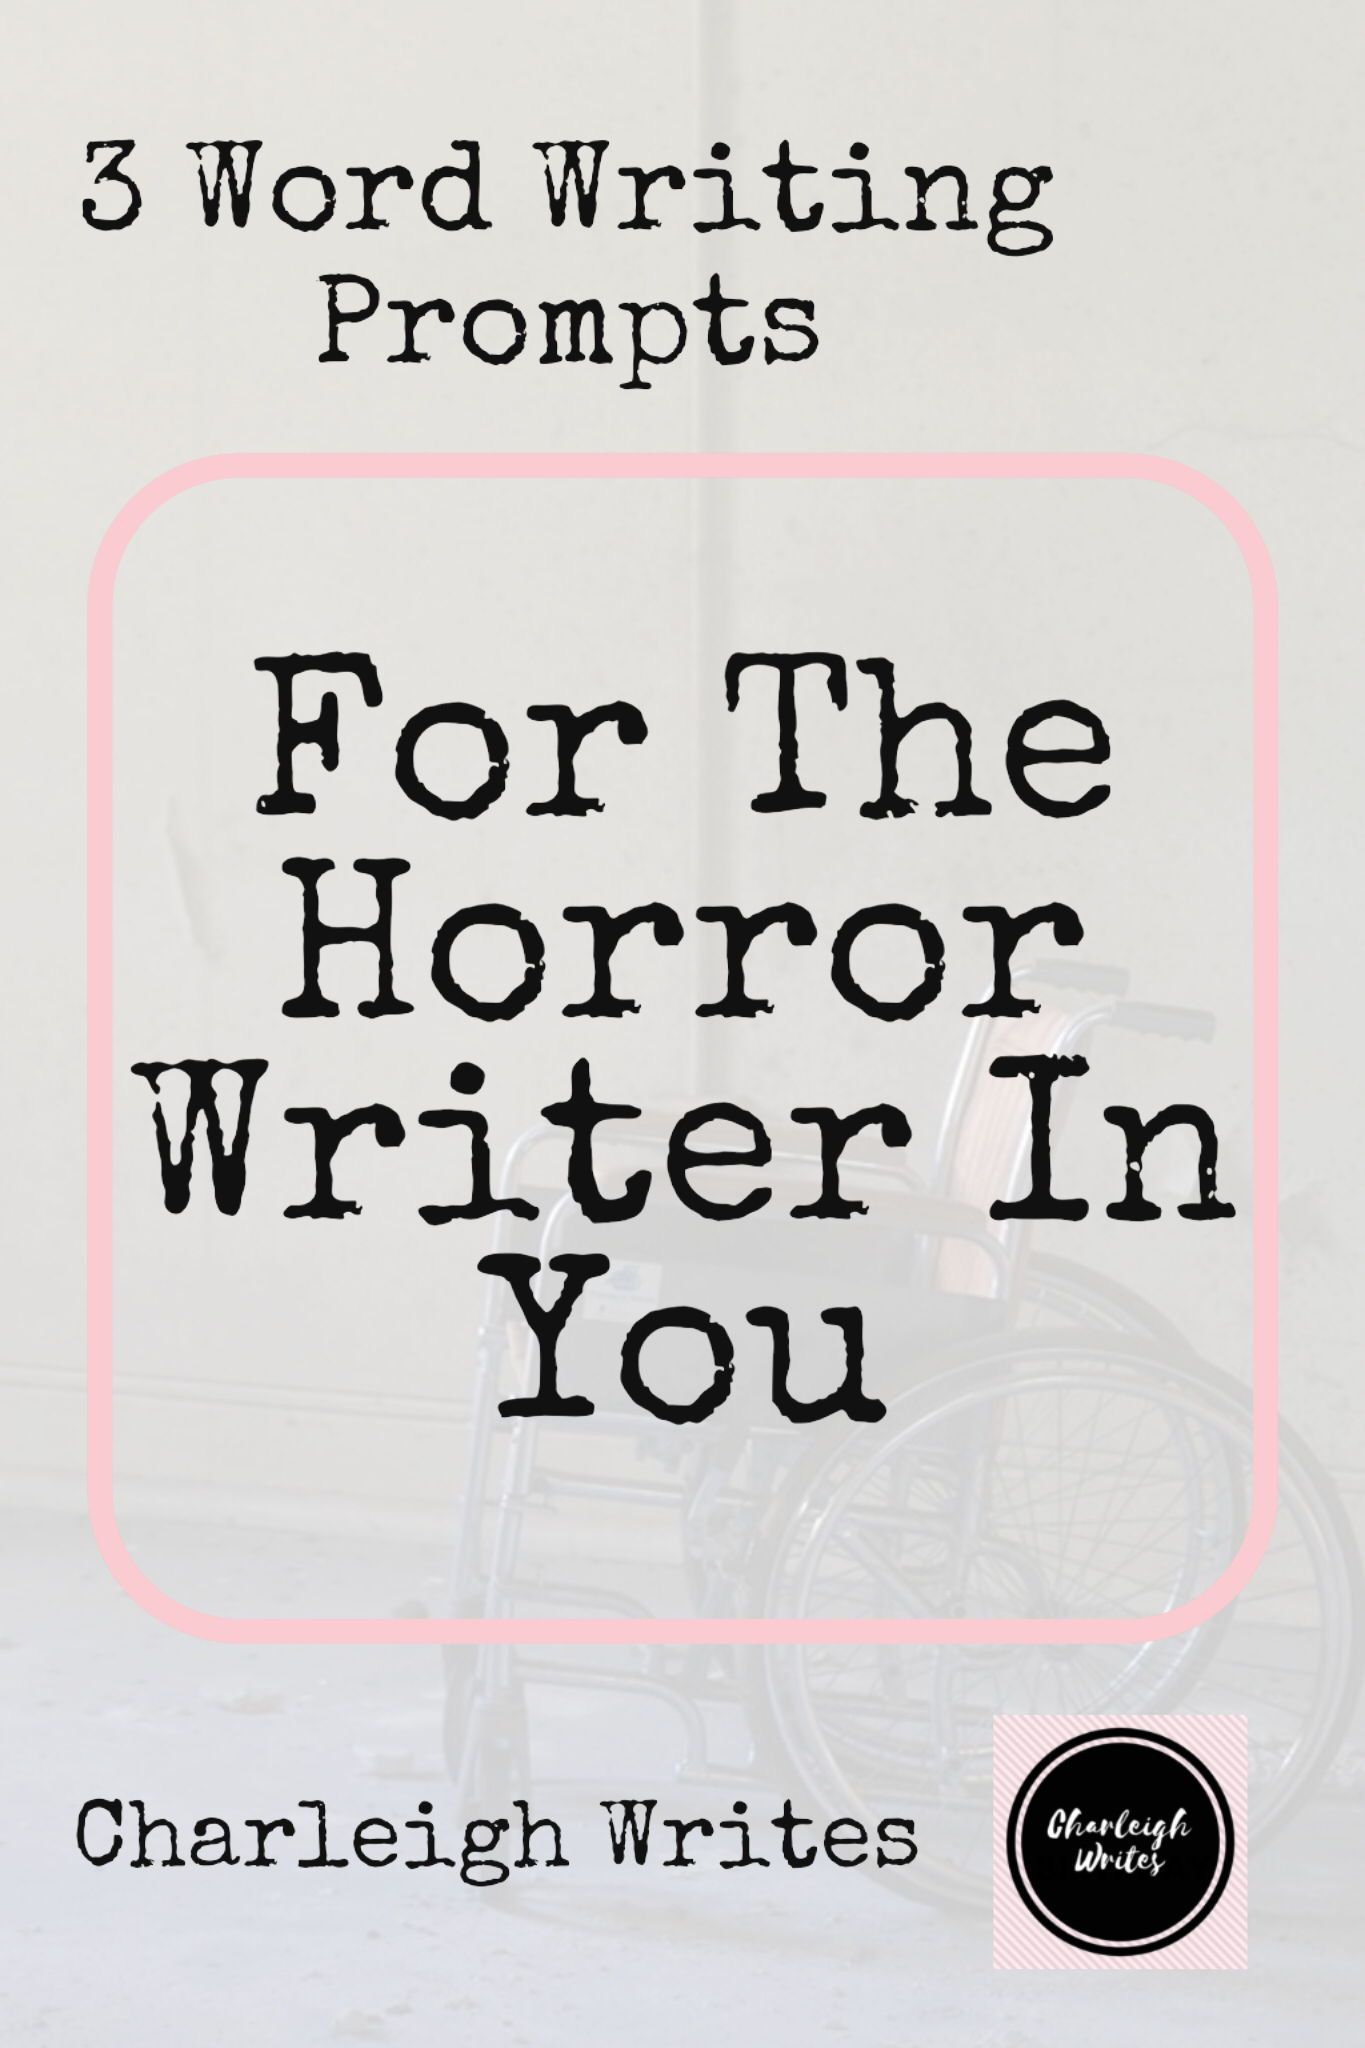 3 Word Creative Writing Prompts (For The Horror Writer In You